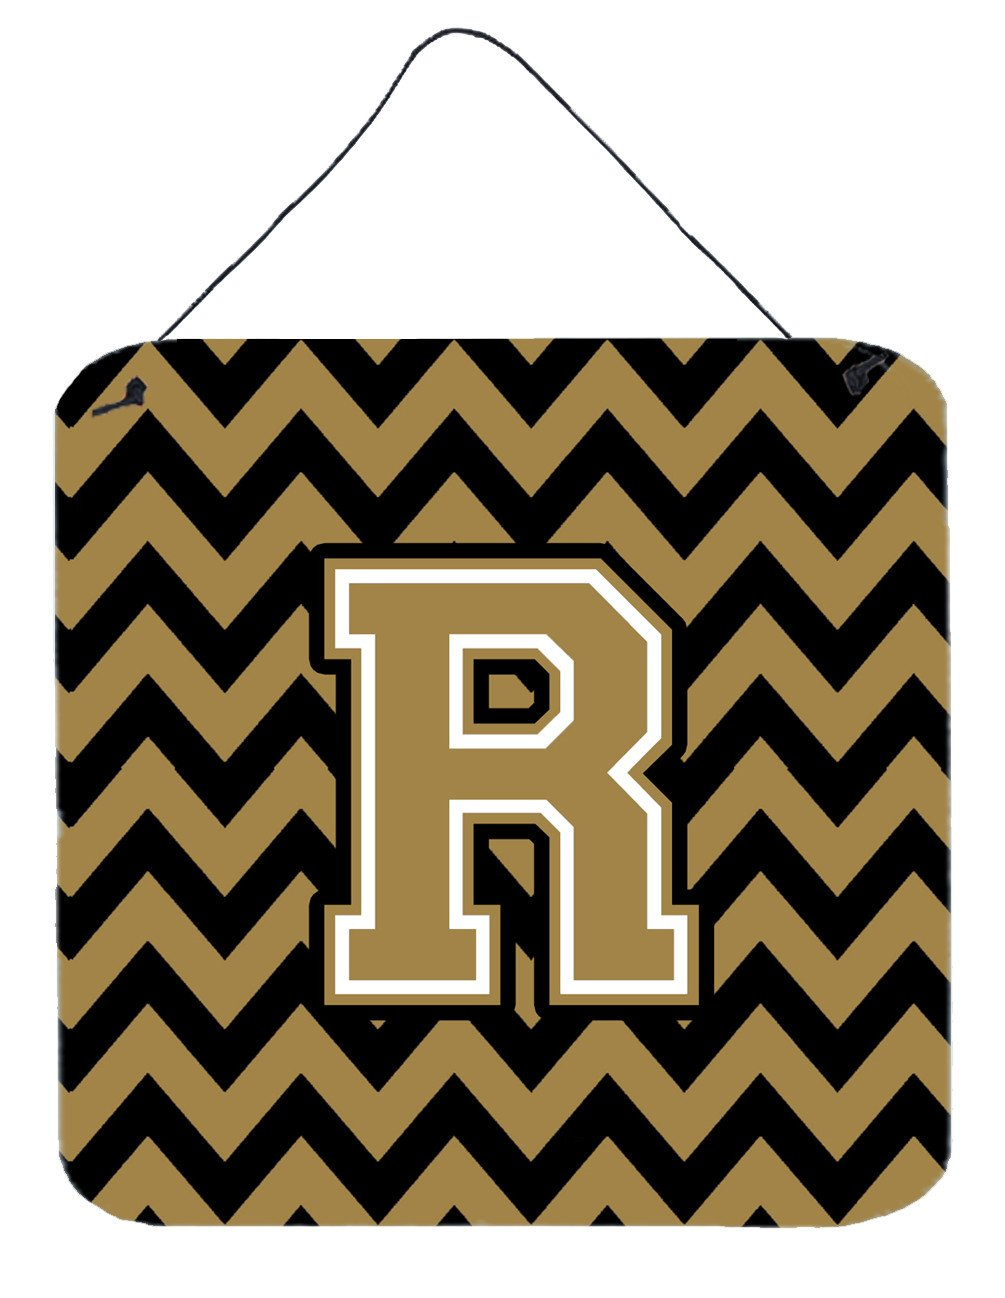 Letter R Chevron Black and Gold  Wall or Door Hanging Prints CJ1050-RDS66 by Caroline's Treasures